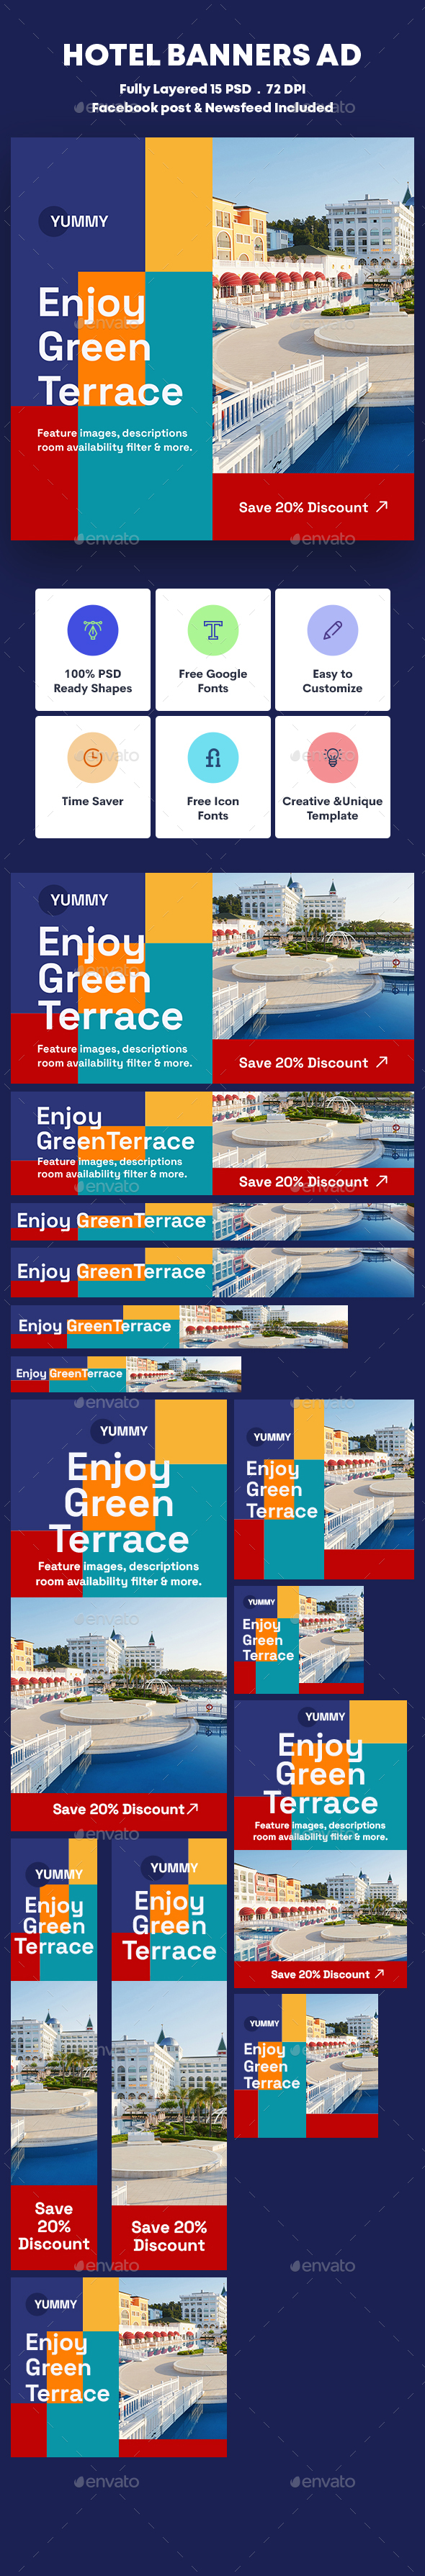 Hotel Banners Ad